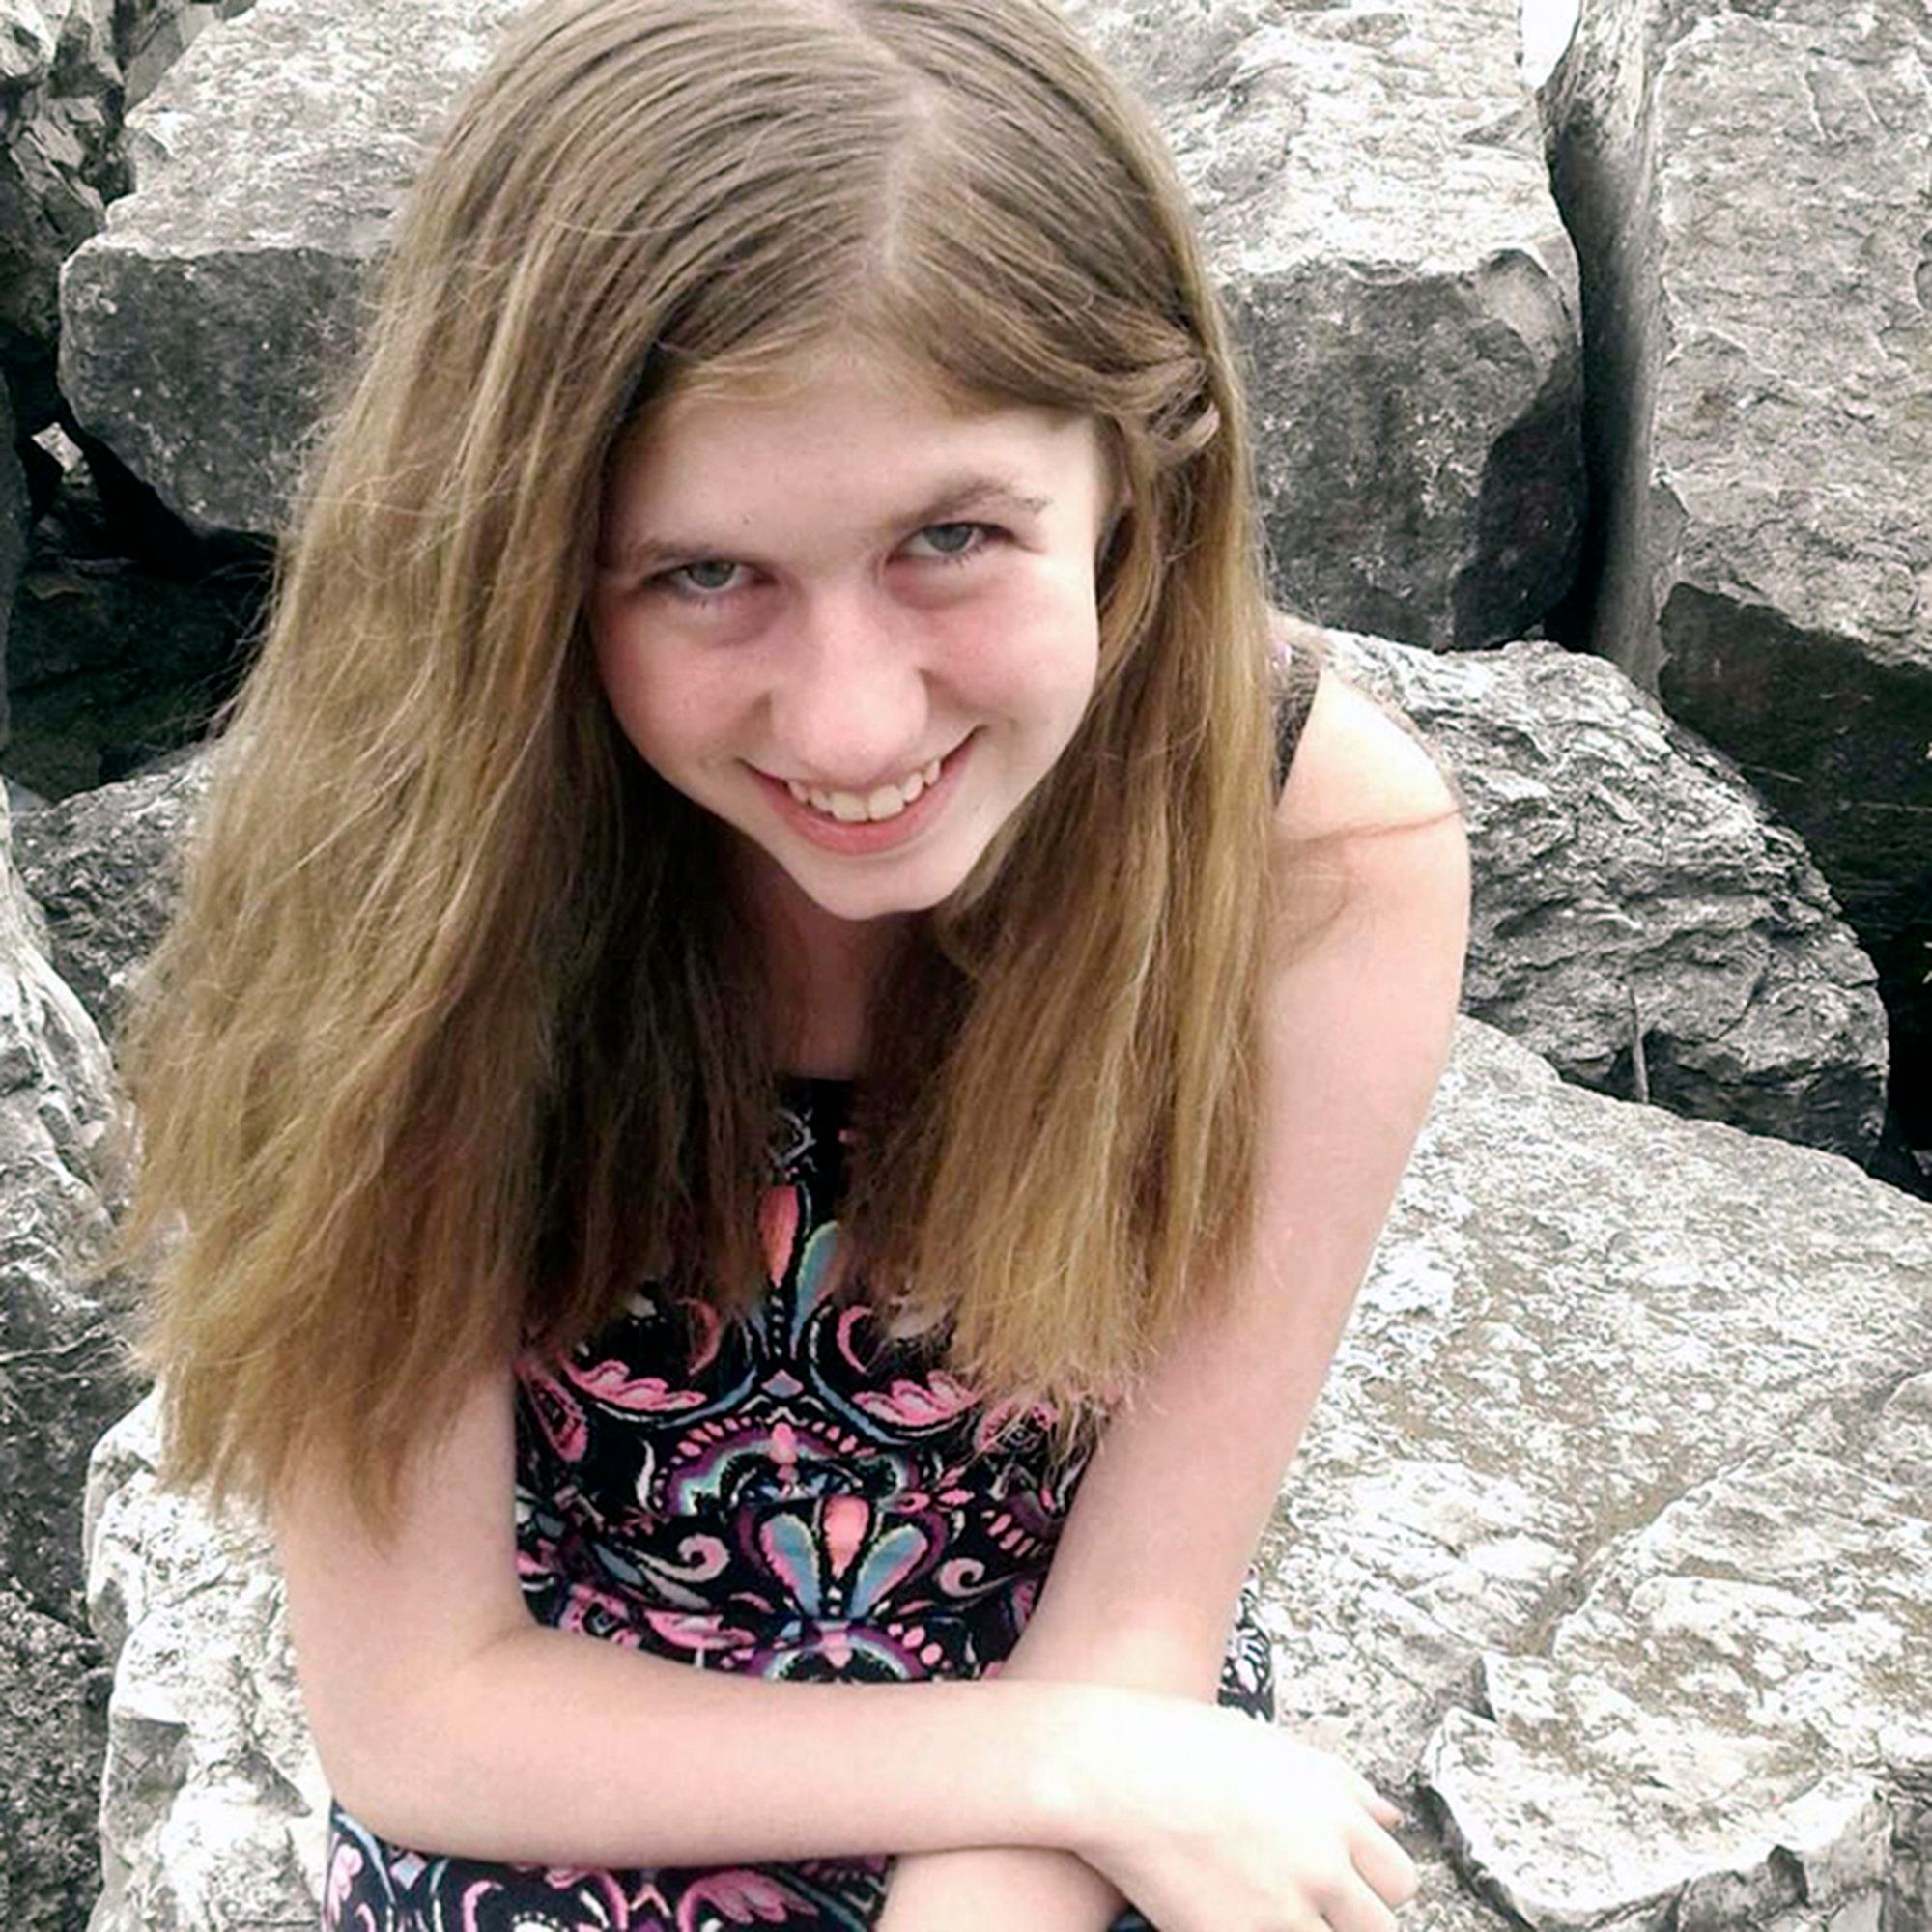 This undated photo provided by Barron County, Wis., Sheriff's Department, shows Jayme Closs. Authorities say that Closs, a missing teenage girl, could be in danger after two adults were found dead at a home in Barron, Wis., on Monday, Oct. 15, 2018. (Courtesy of Barron County Sheriff's Department via AP)